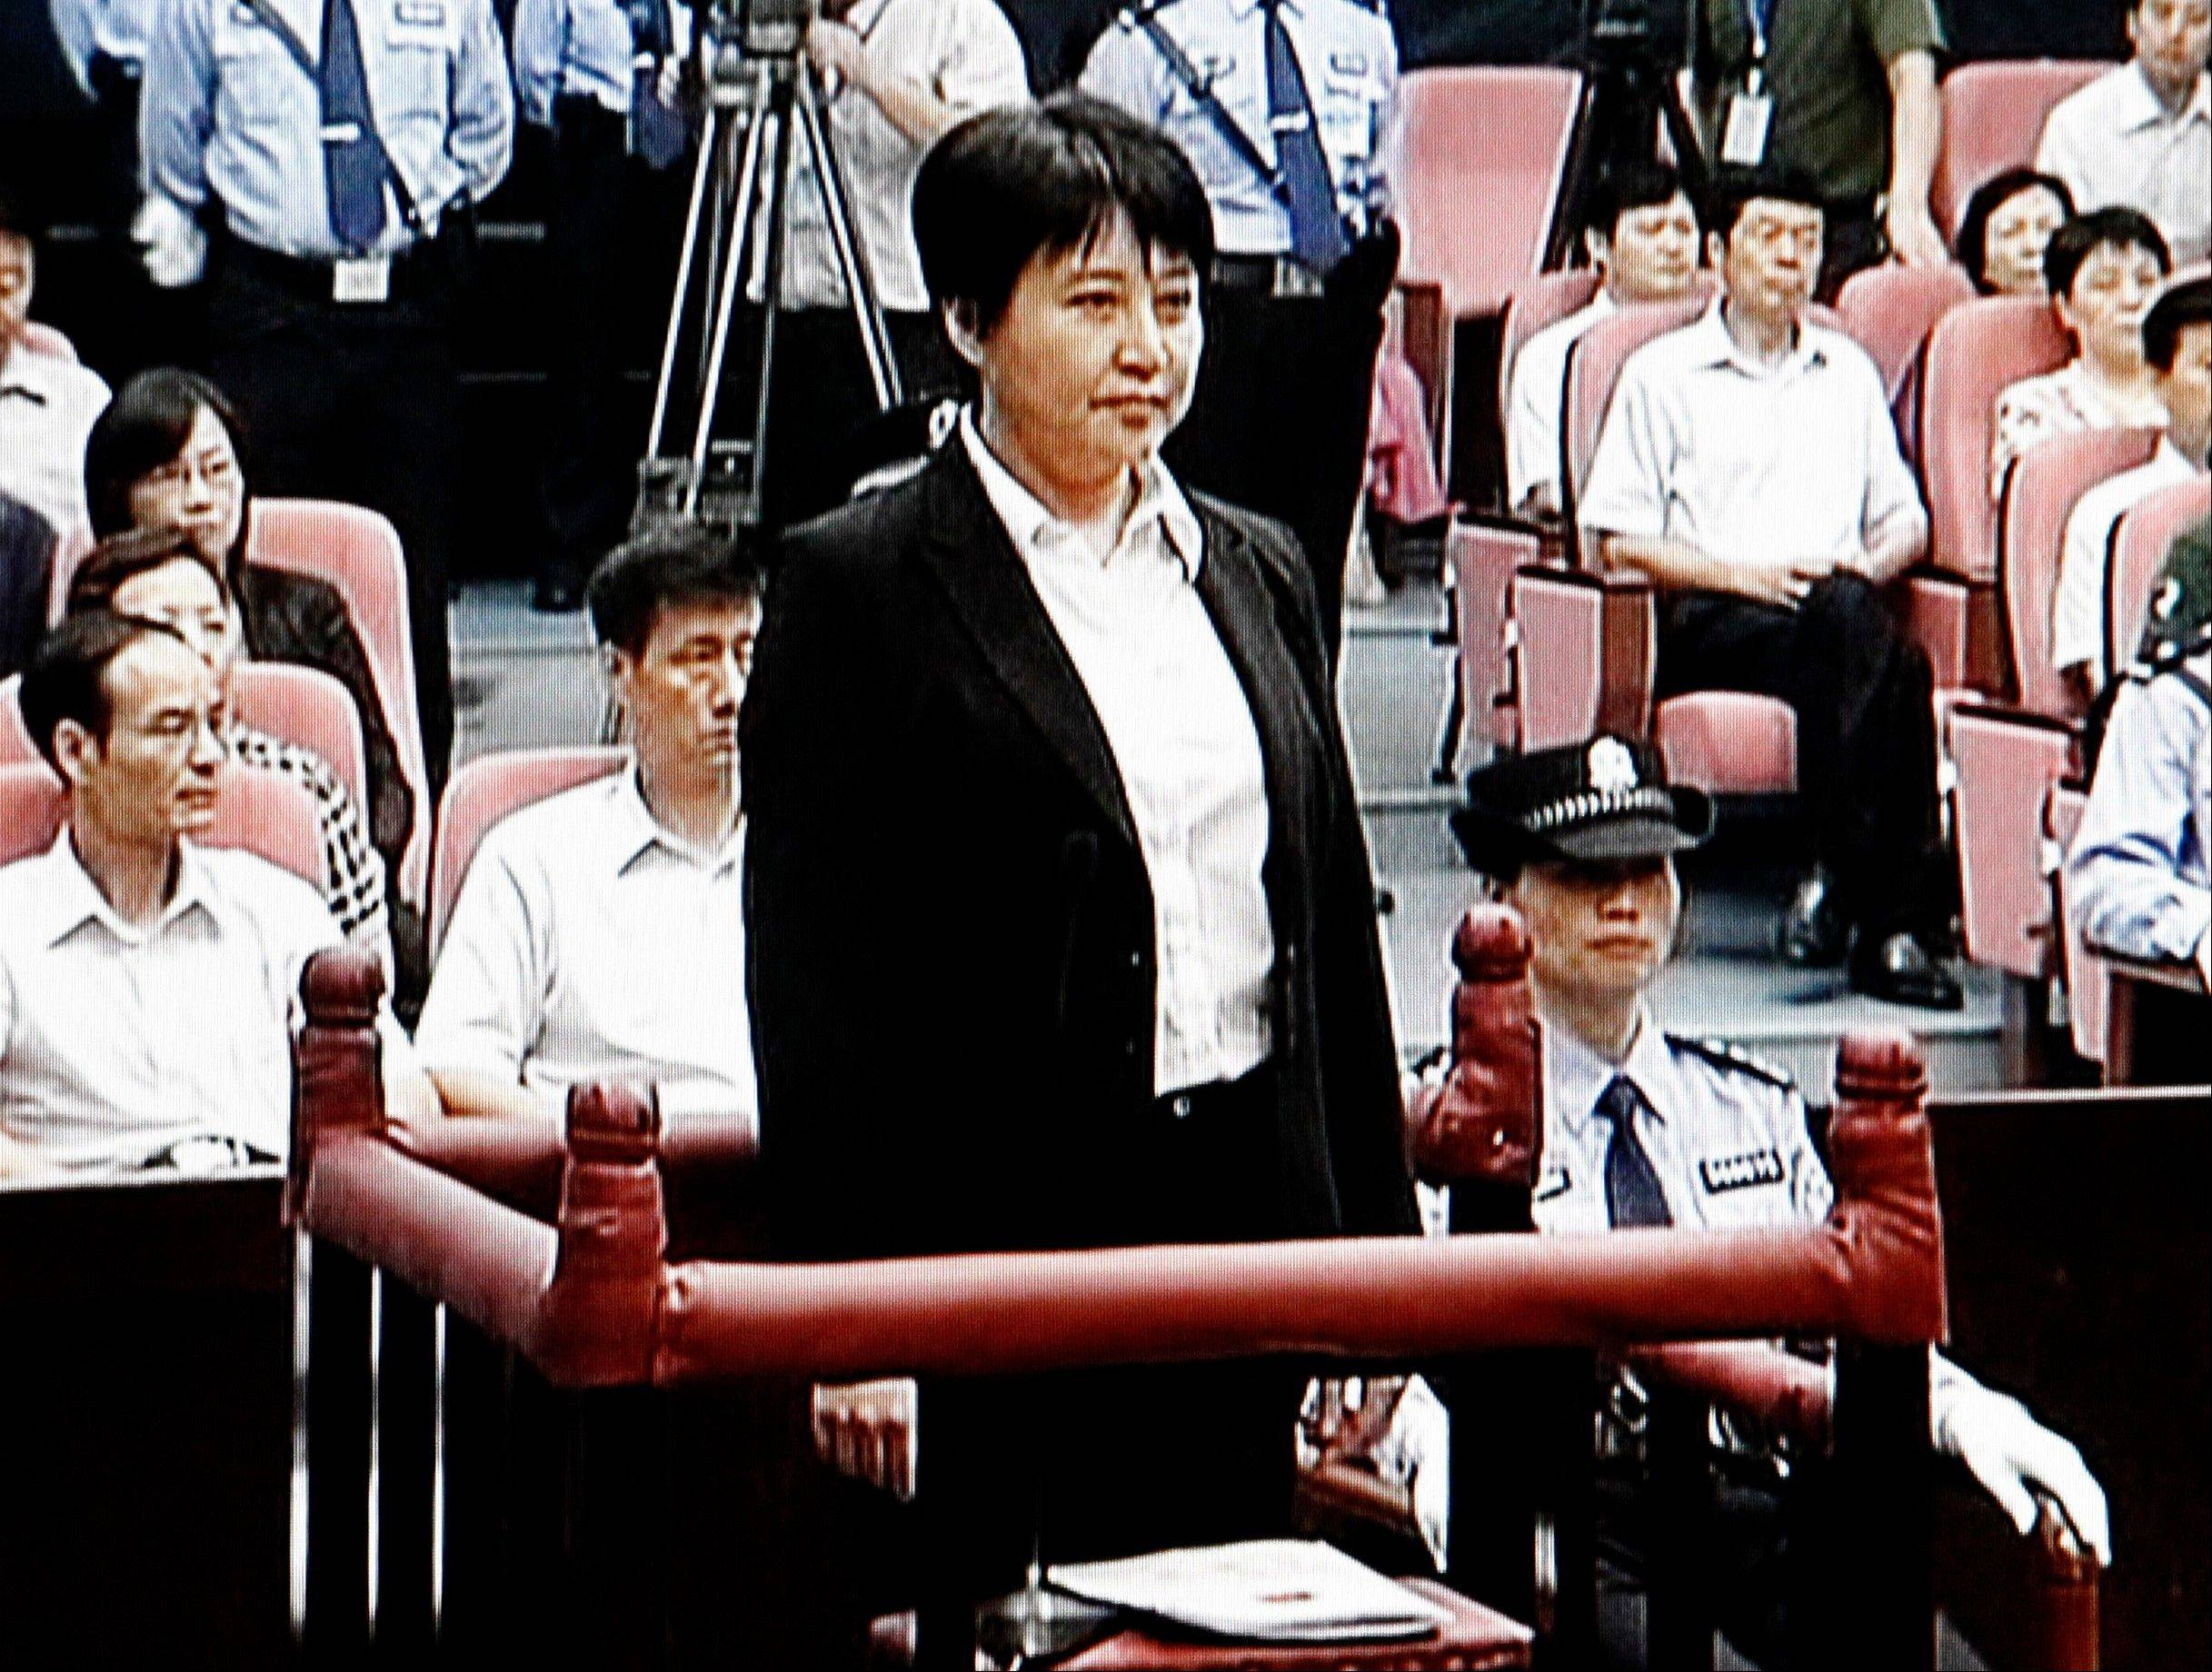 Gu Kailai, center, the wife of a disgraced Chinese politician, was given a suspended death sentence Monday after confessing to killing a British businessman by poisoning him with cyanide in a case that rocked the country's top political leadership.